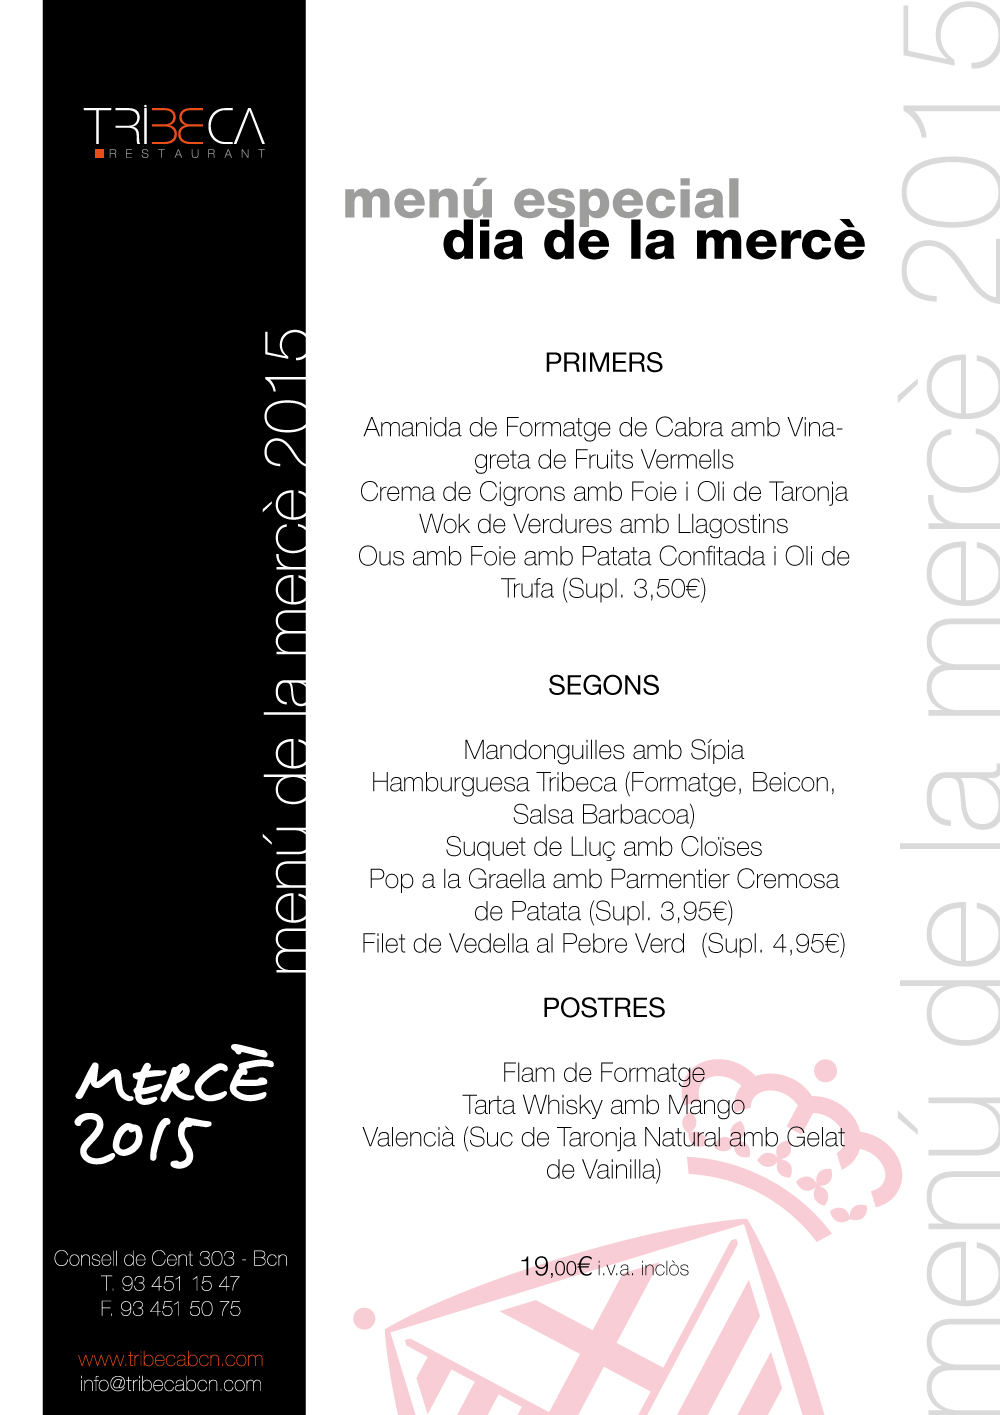 menu-merce-2015-restaurant-barcelona